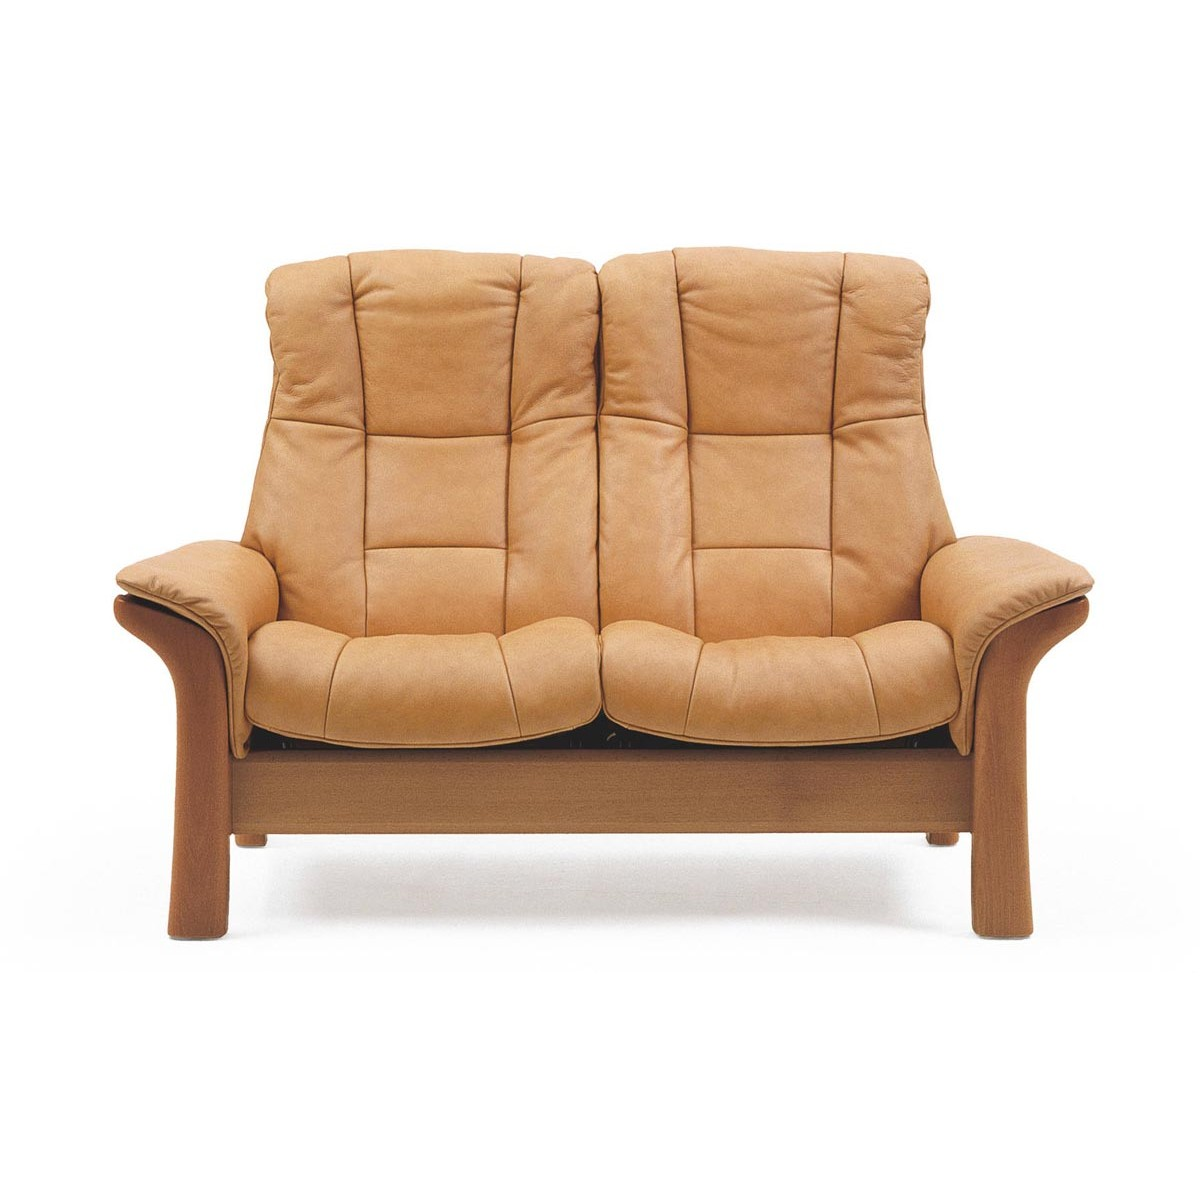 Stressless Windsor High Back Loveseat From 4 By Stressless Danco Modern